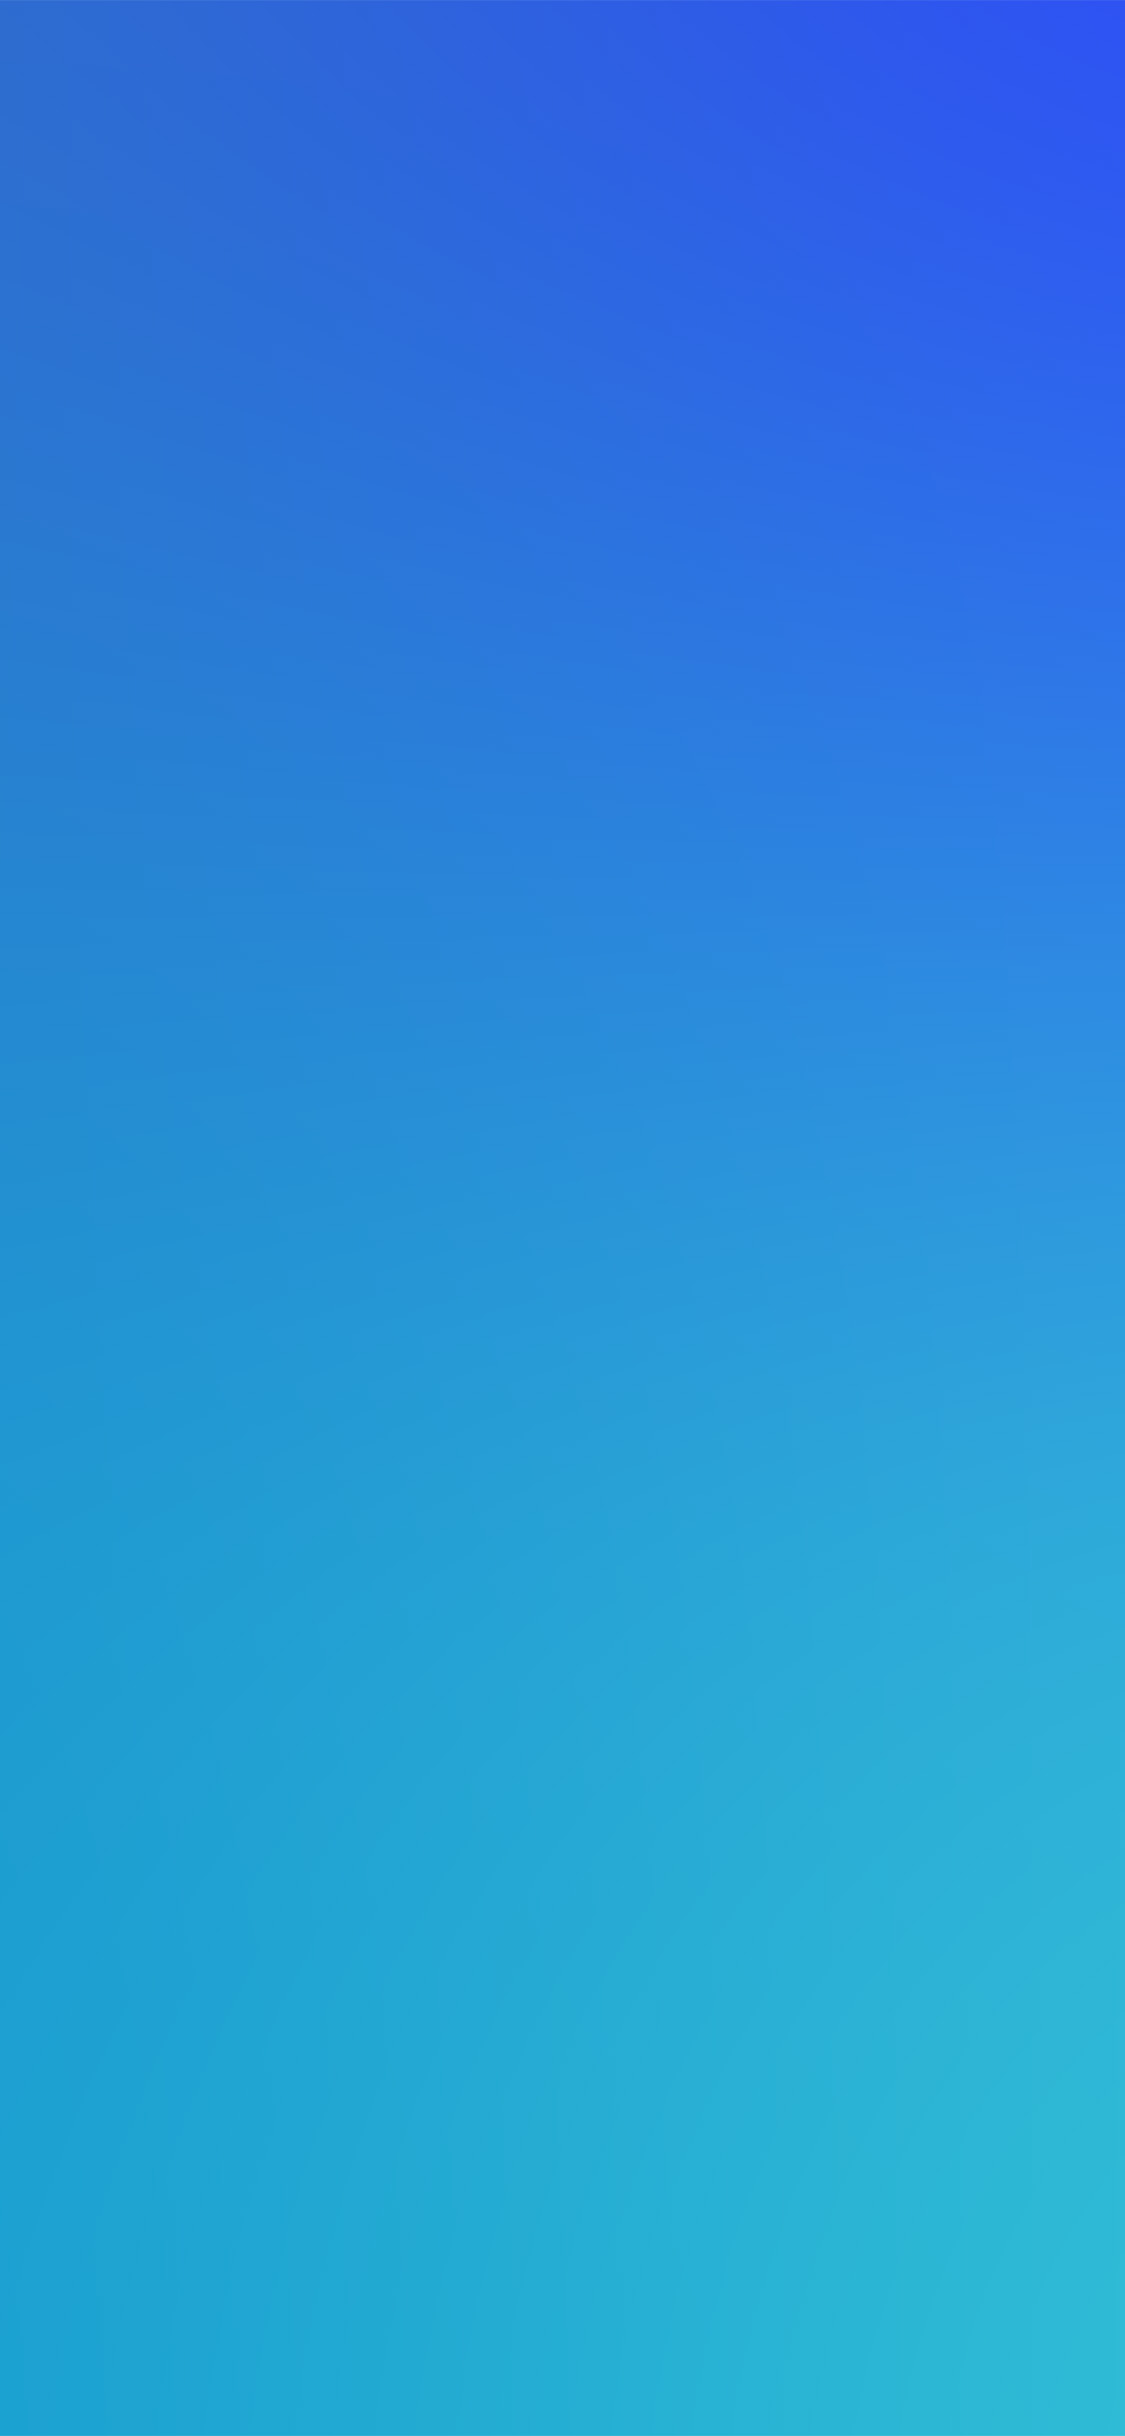 iPhonexpapers.com-Apple-iPhone-wallpaper-sm05-blue-sky-blur-gradation